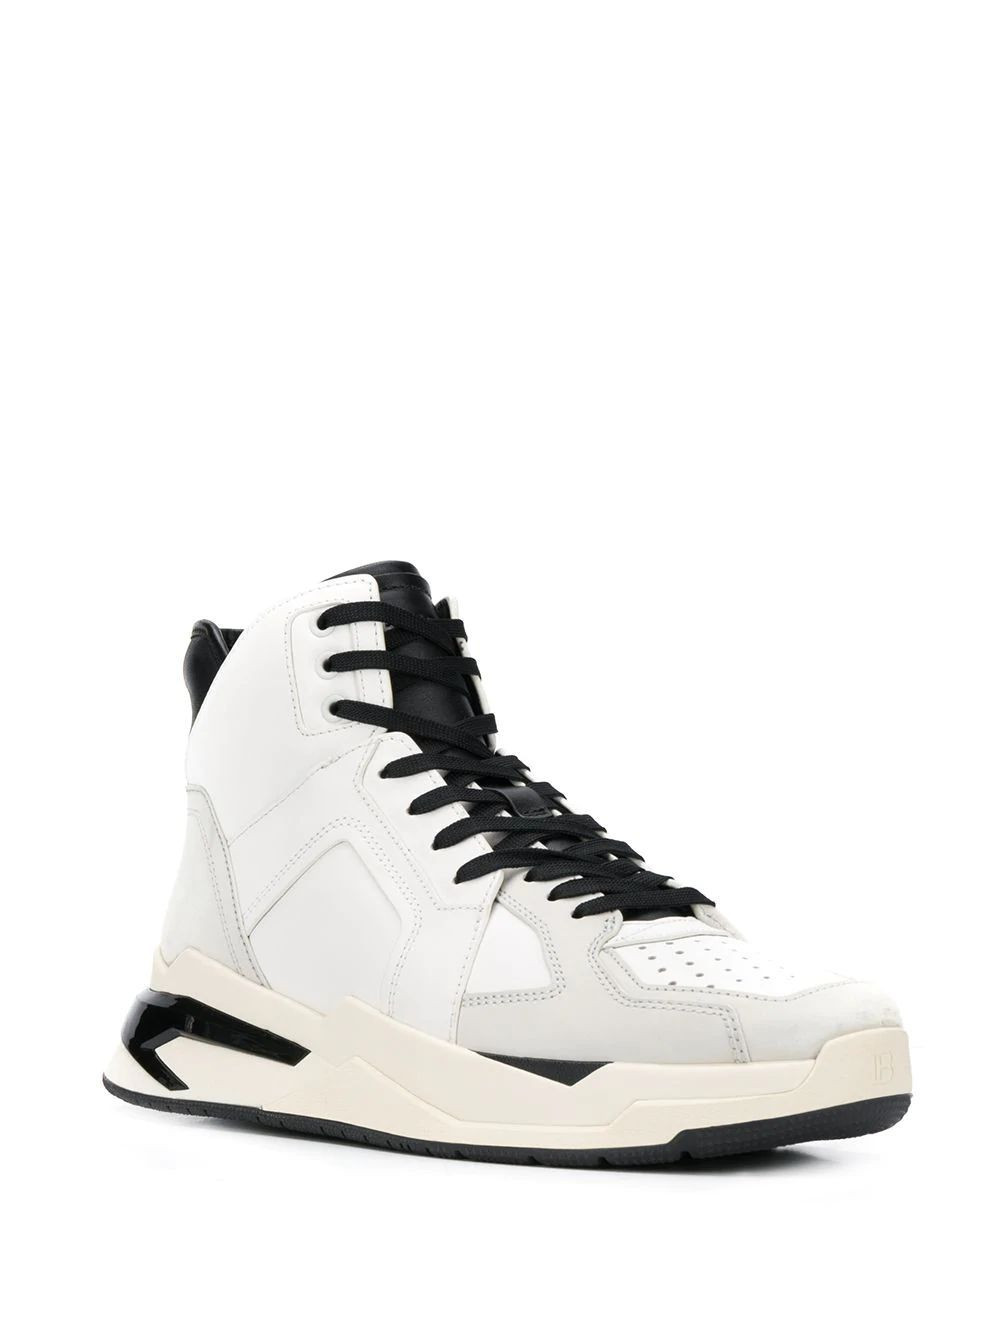 BALMAIN MEN'S SM0C173L016GAB WHITE LEATHER HI TOP SNEAKERS